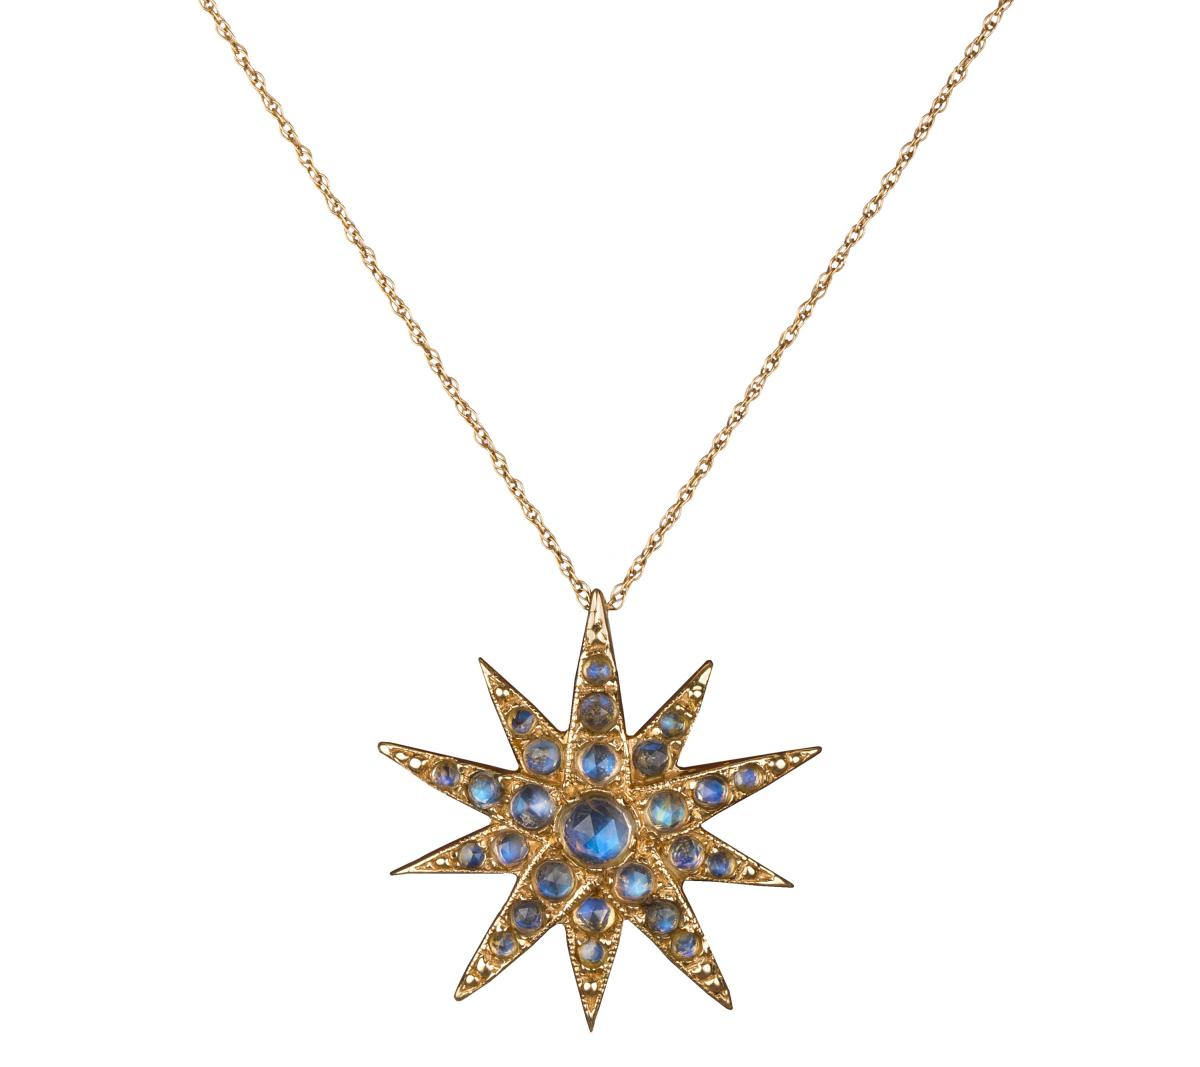 Blackbird and the Snow Celestial Star necklace